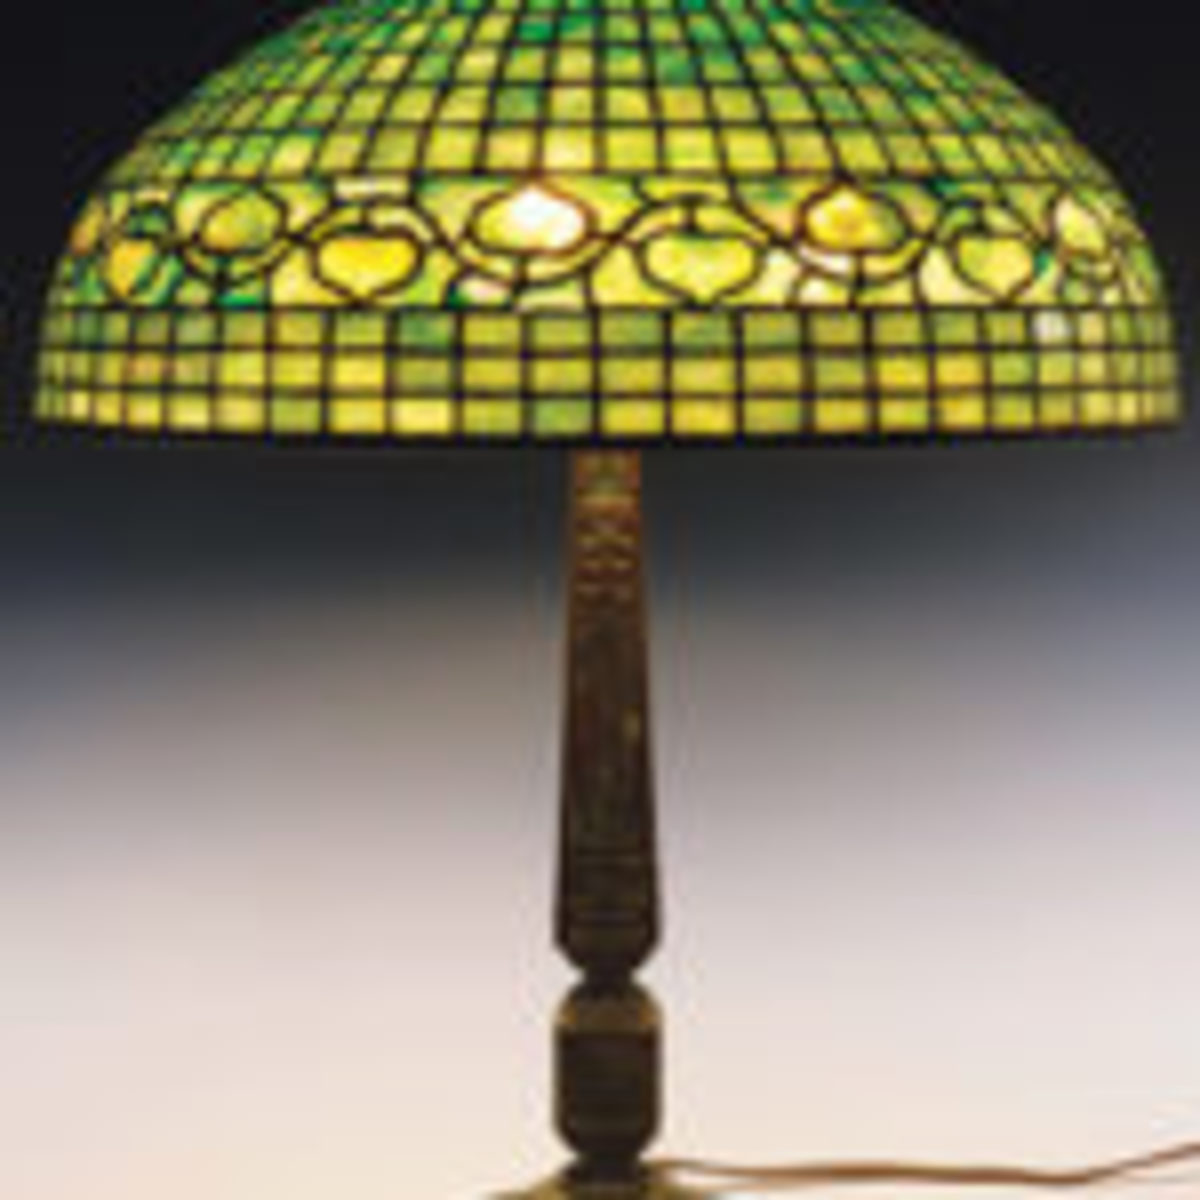 Tiffany table lamp with Acorn pattern shade